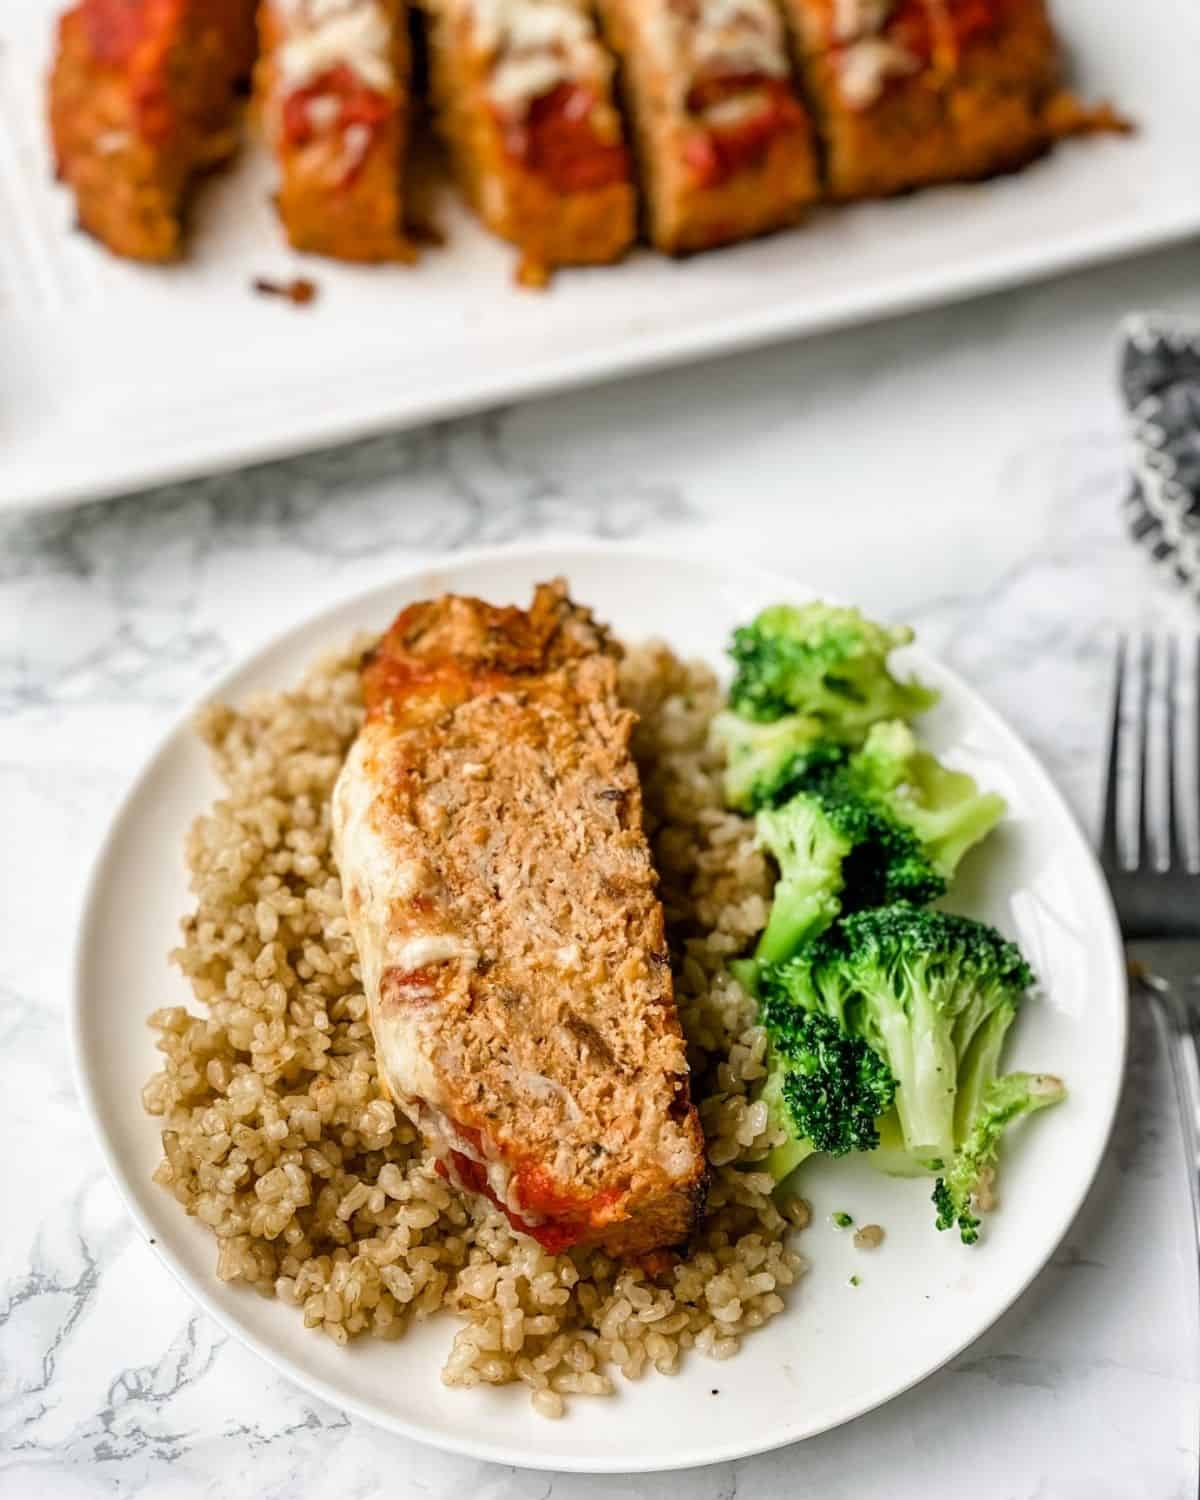 Italian meatloaf on a plate with rice and broccoli with a platter of sliced meatloaf in the background.